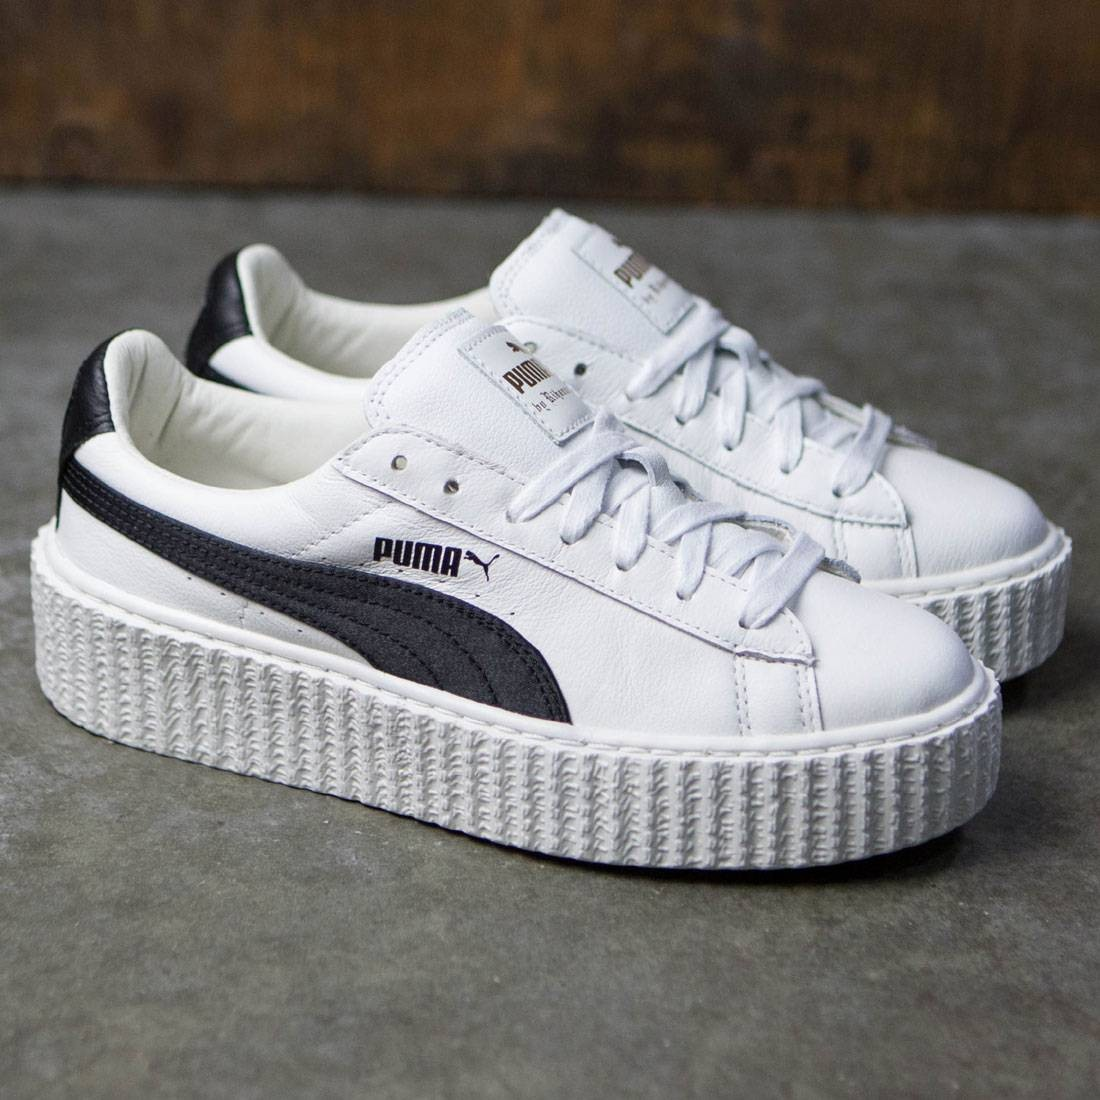 1bbb4c65d92 Puma x Fenty By Rihanna Women Creeper - Cracked Leather (white)